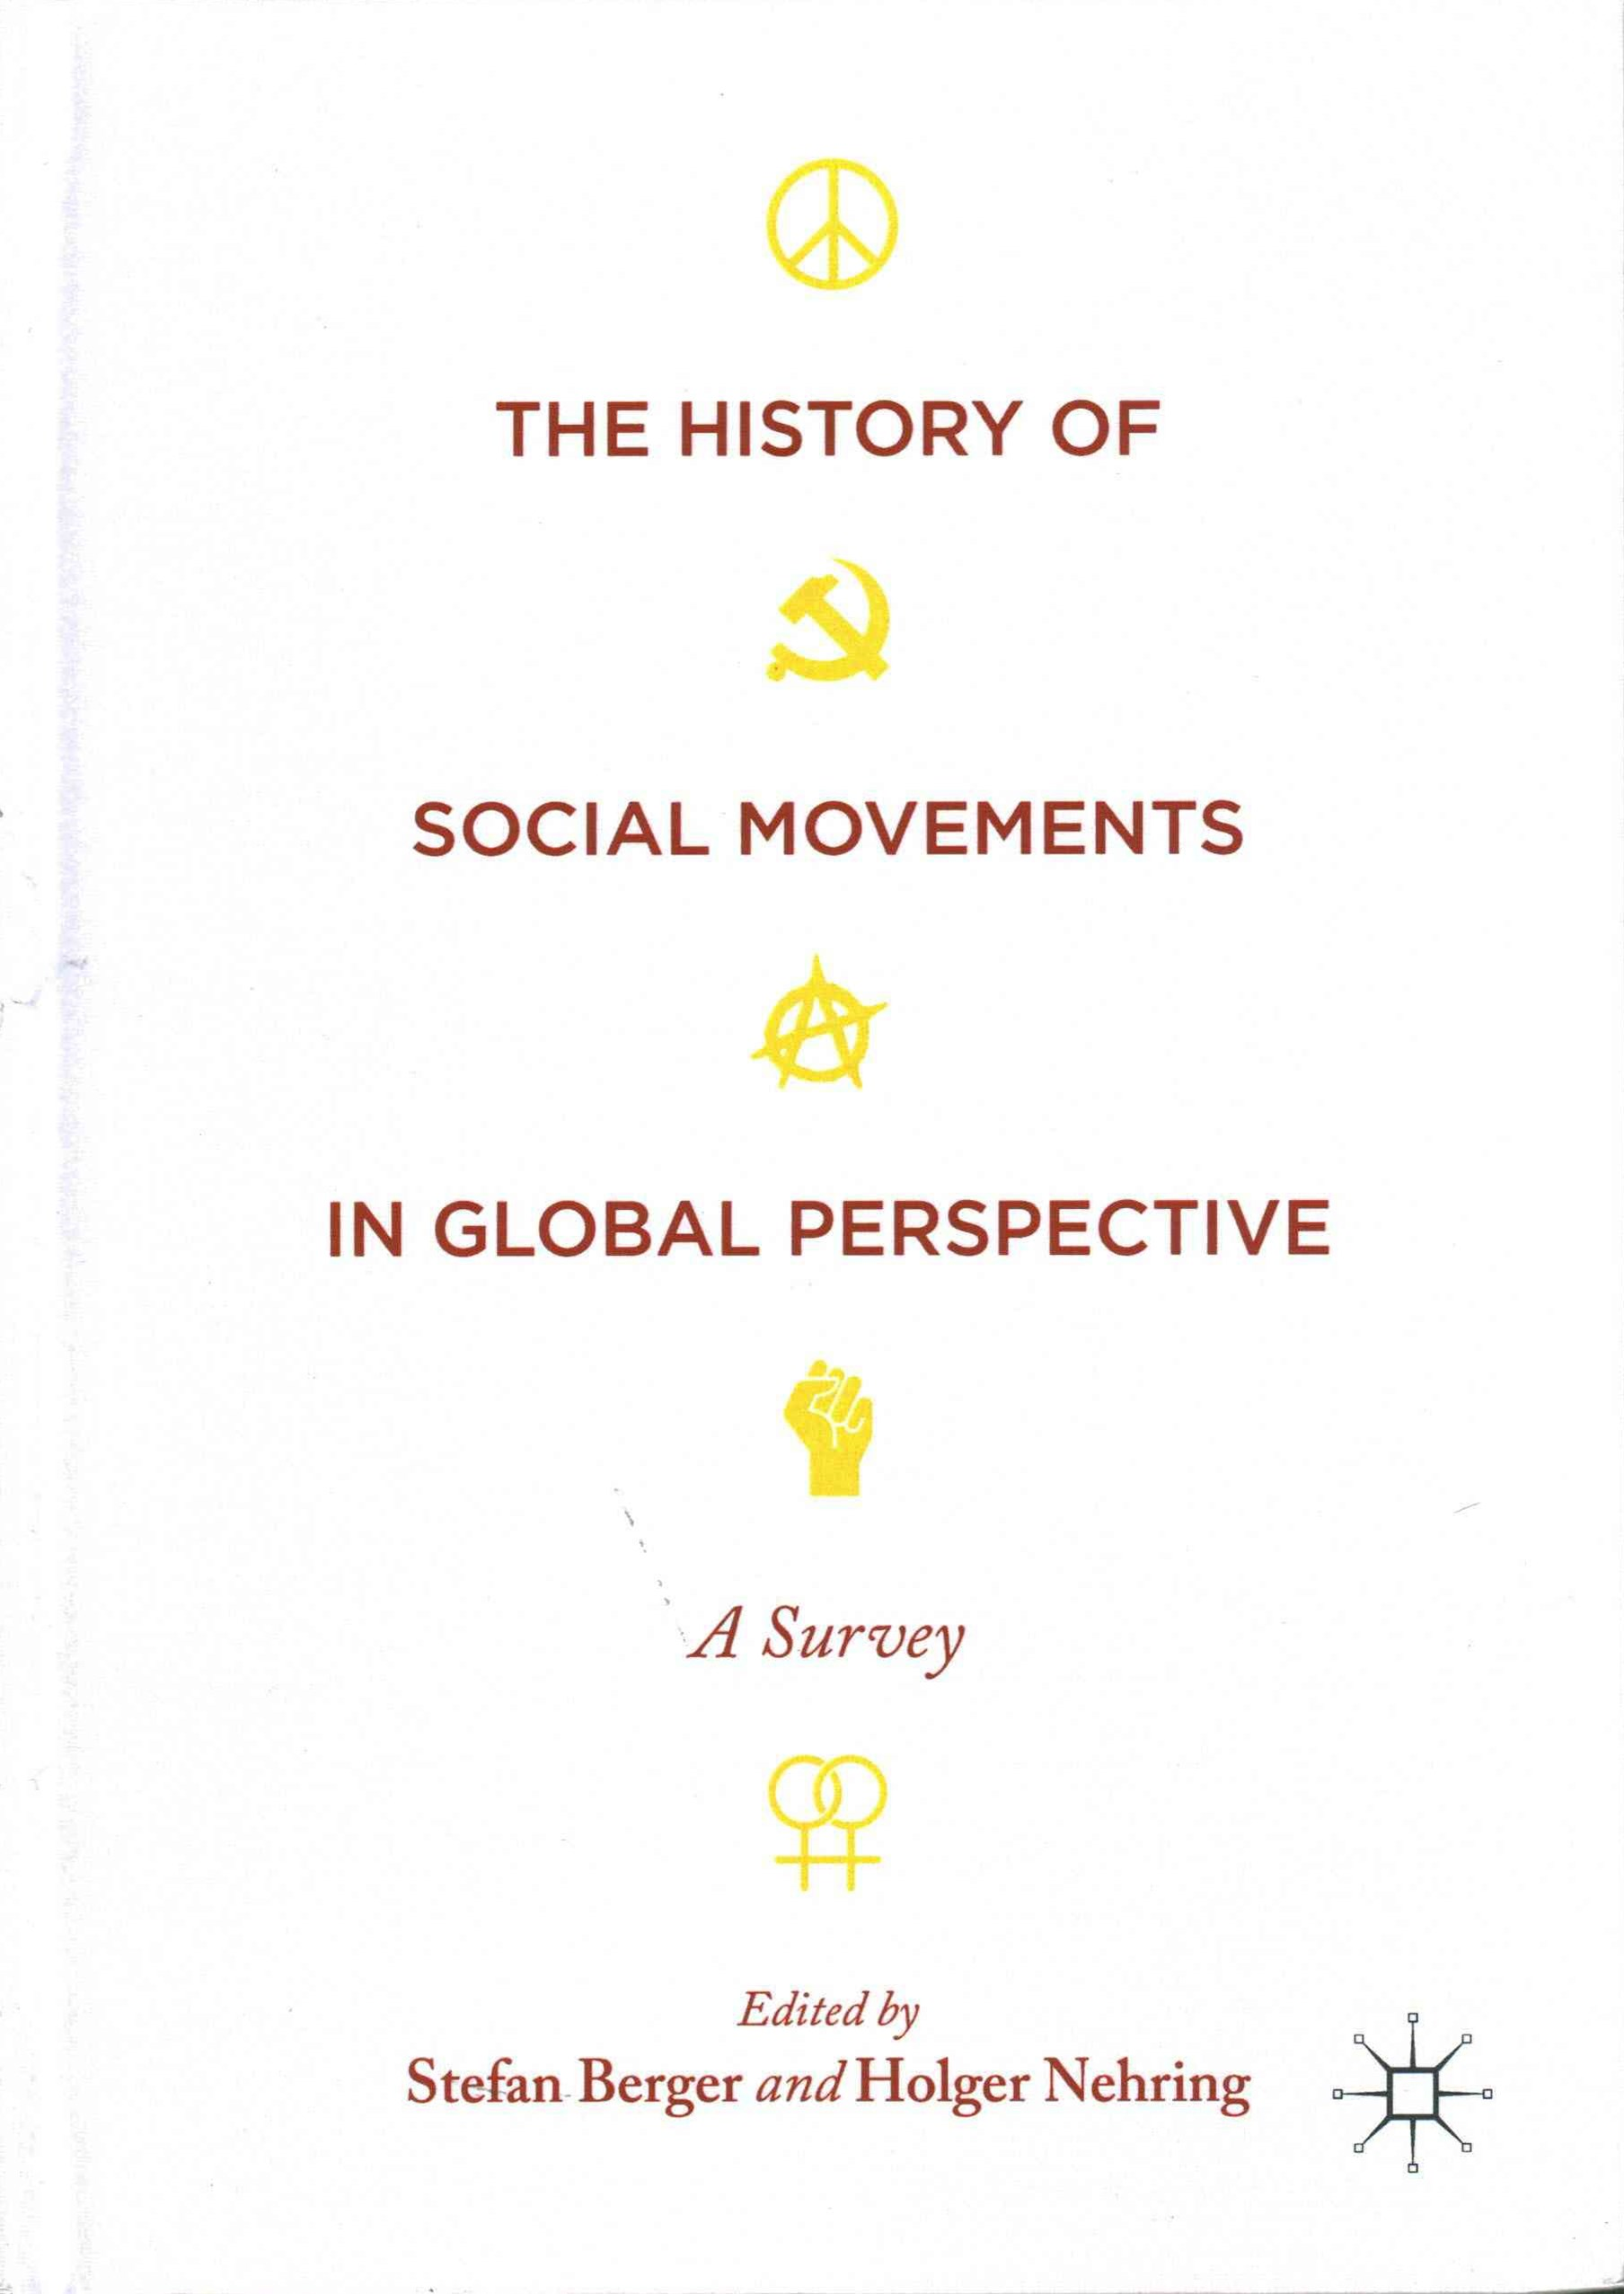 The History of Social Movements in Global Perspective